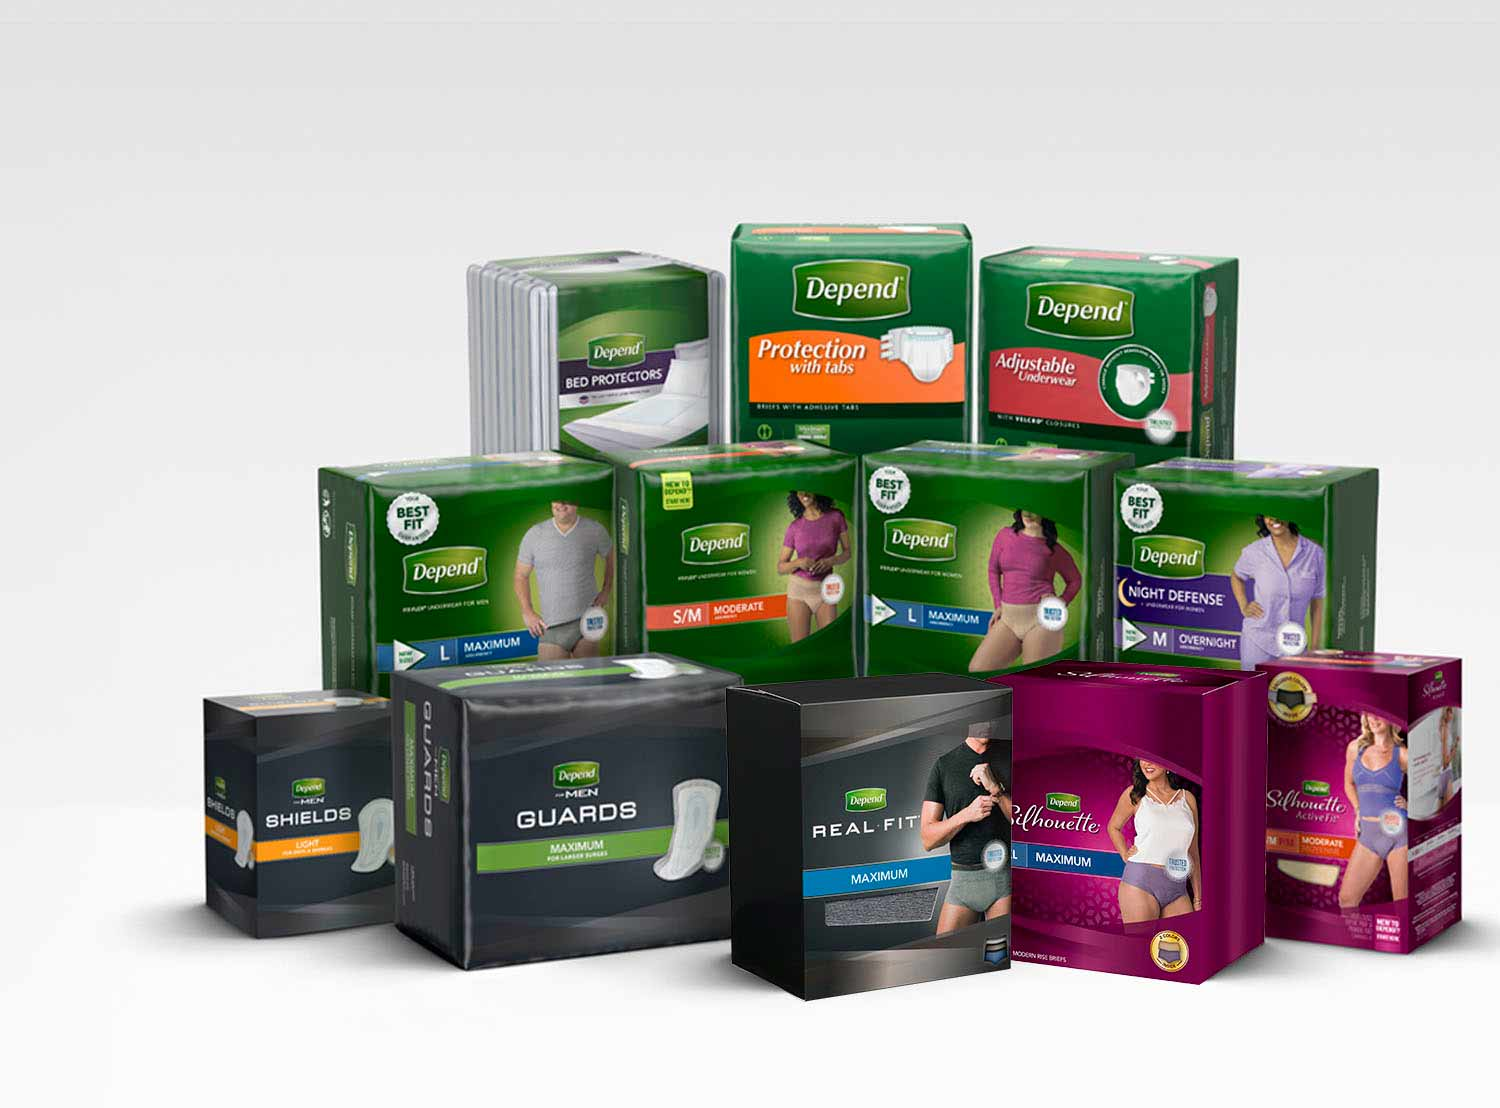 Depend product family line up